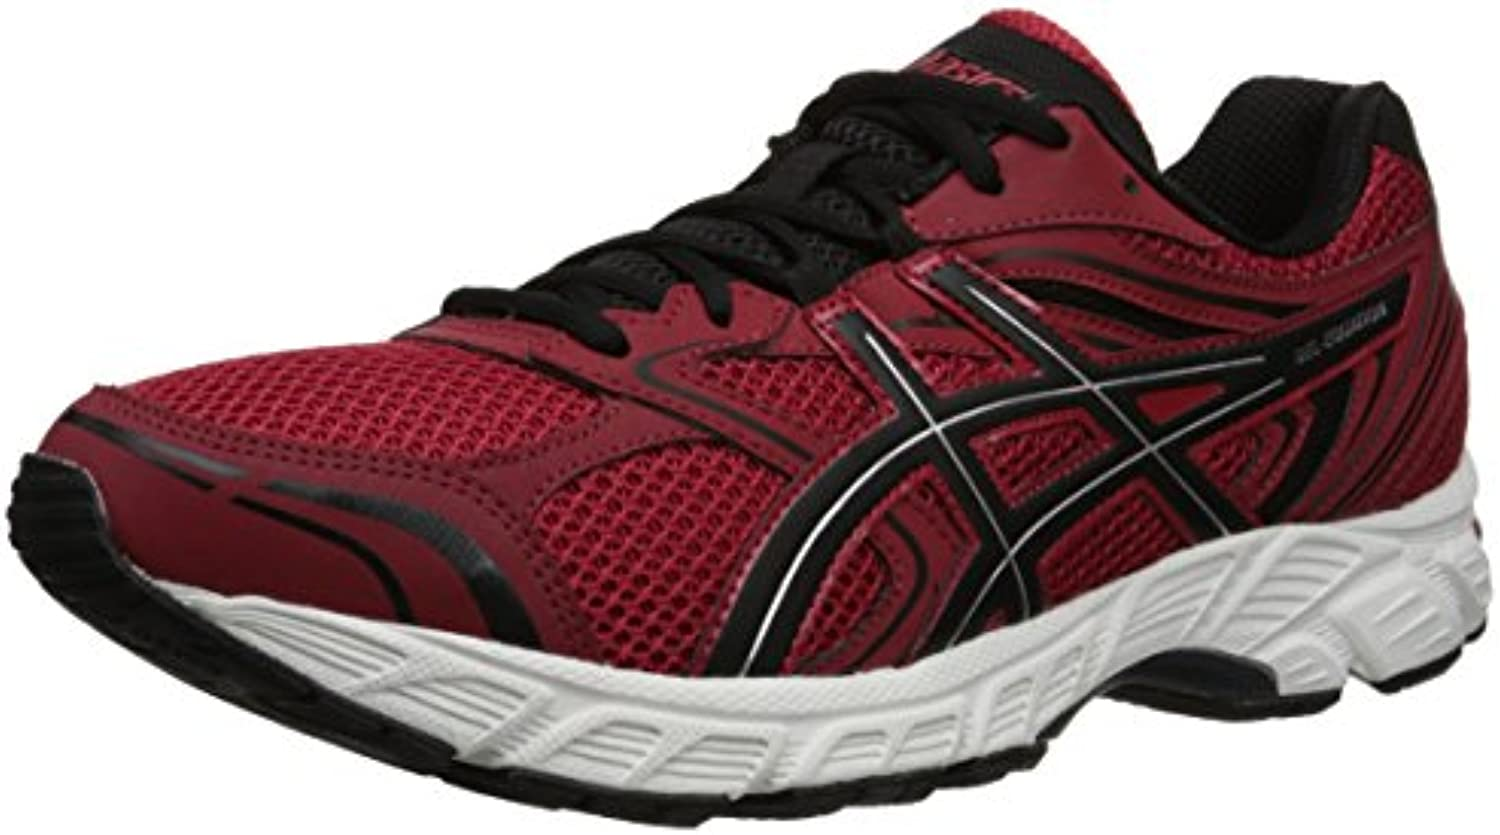 Equal Gel 8 Running Shoes para hombre, Chili Pepper / Black / Silver, 8.5 M US